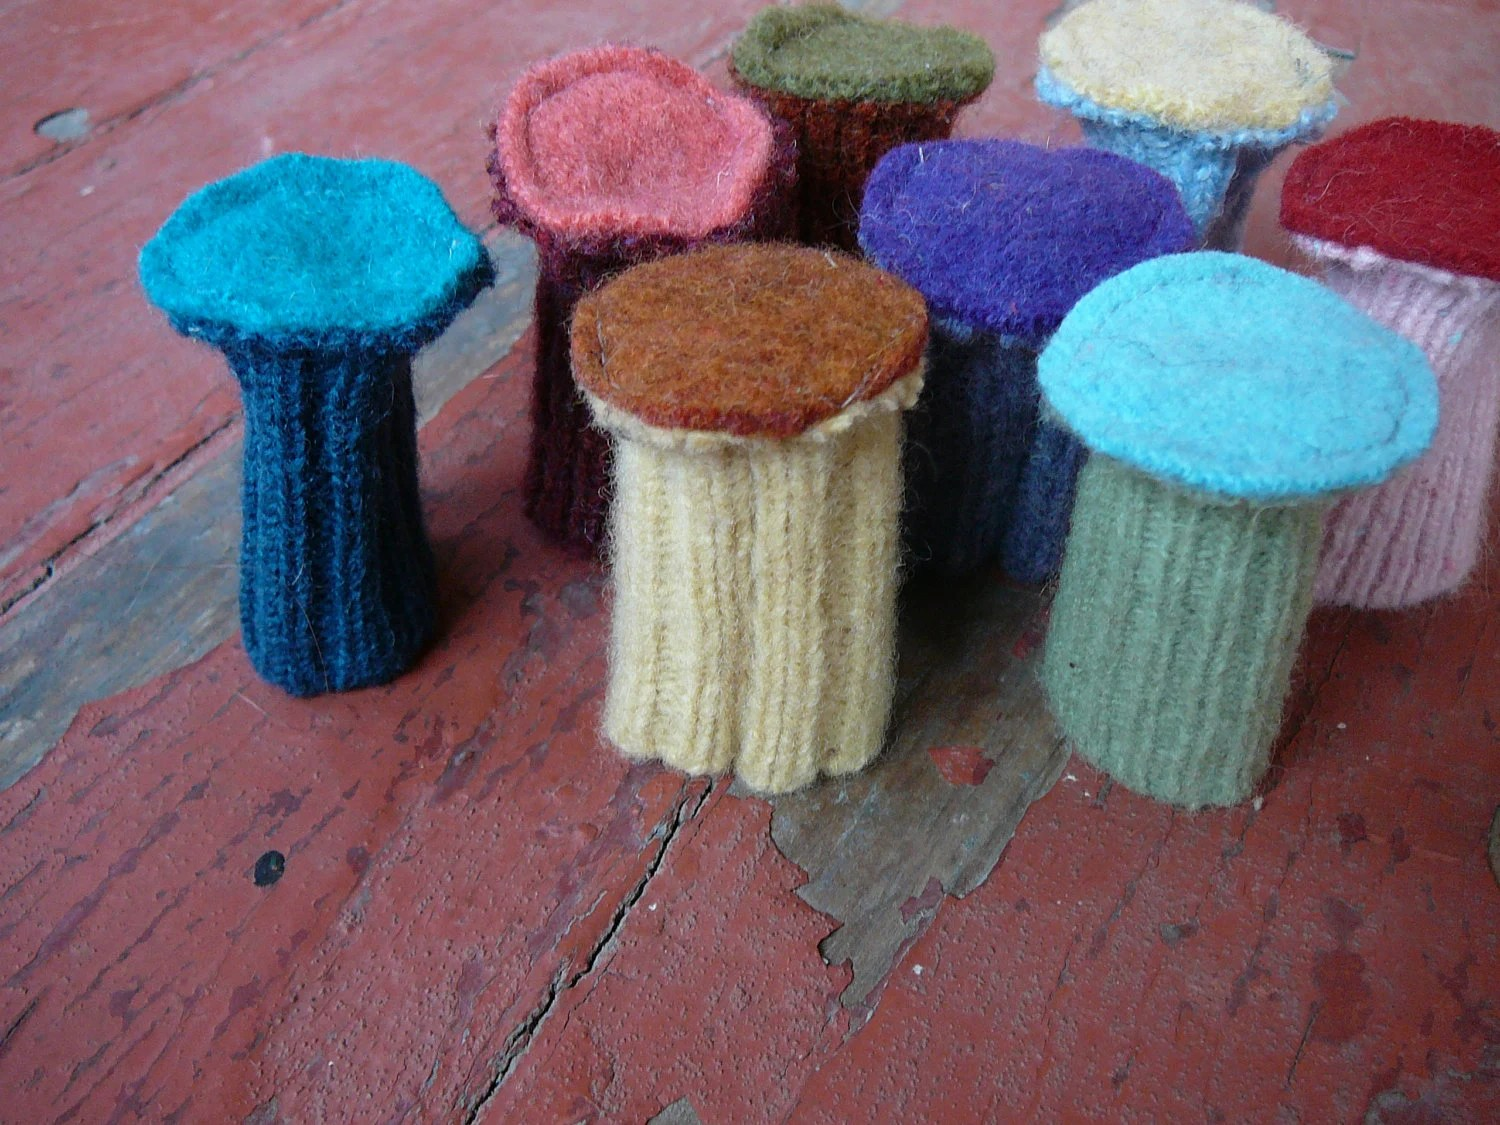 felt bottoms for chairs safety first high chair recall custom socks pure wool floor protectors